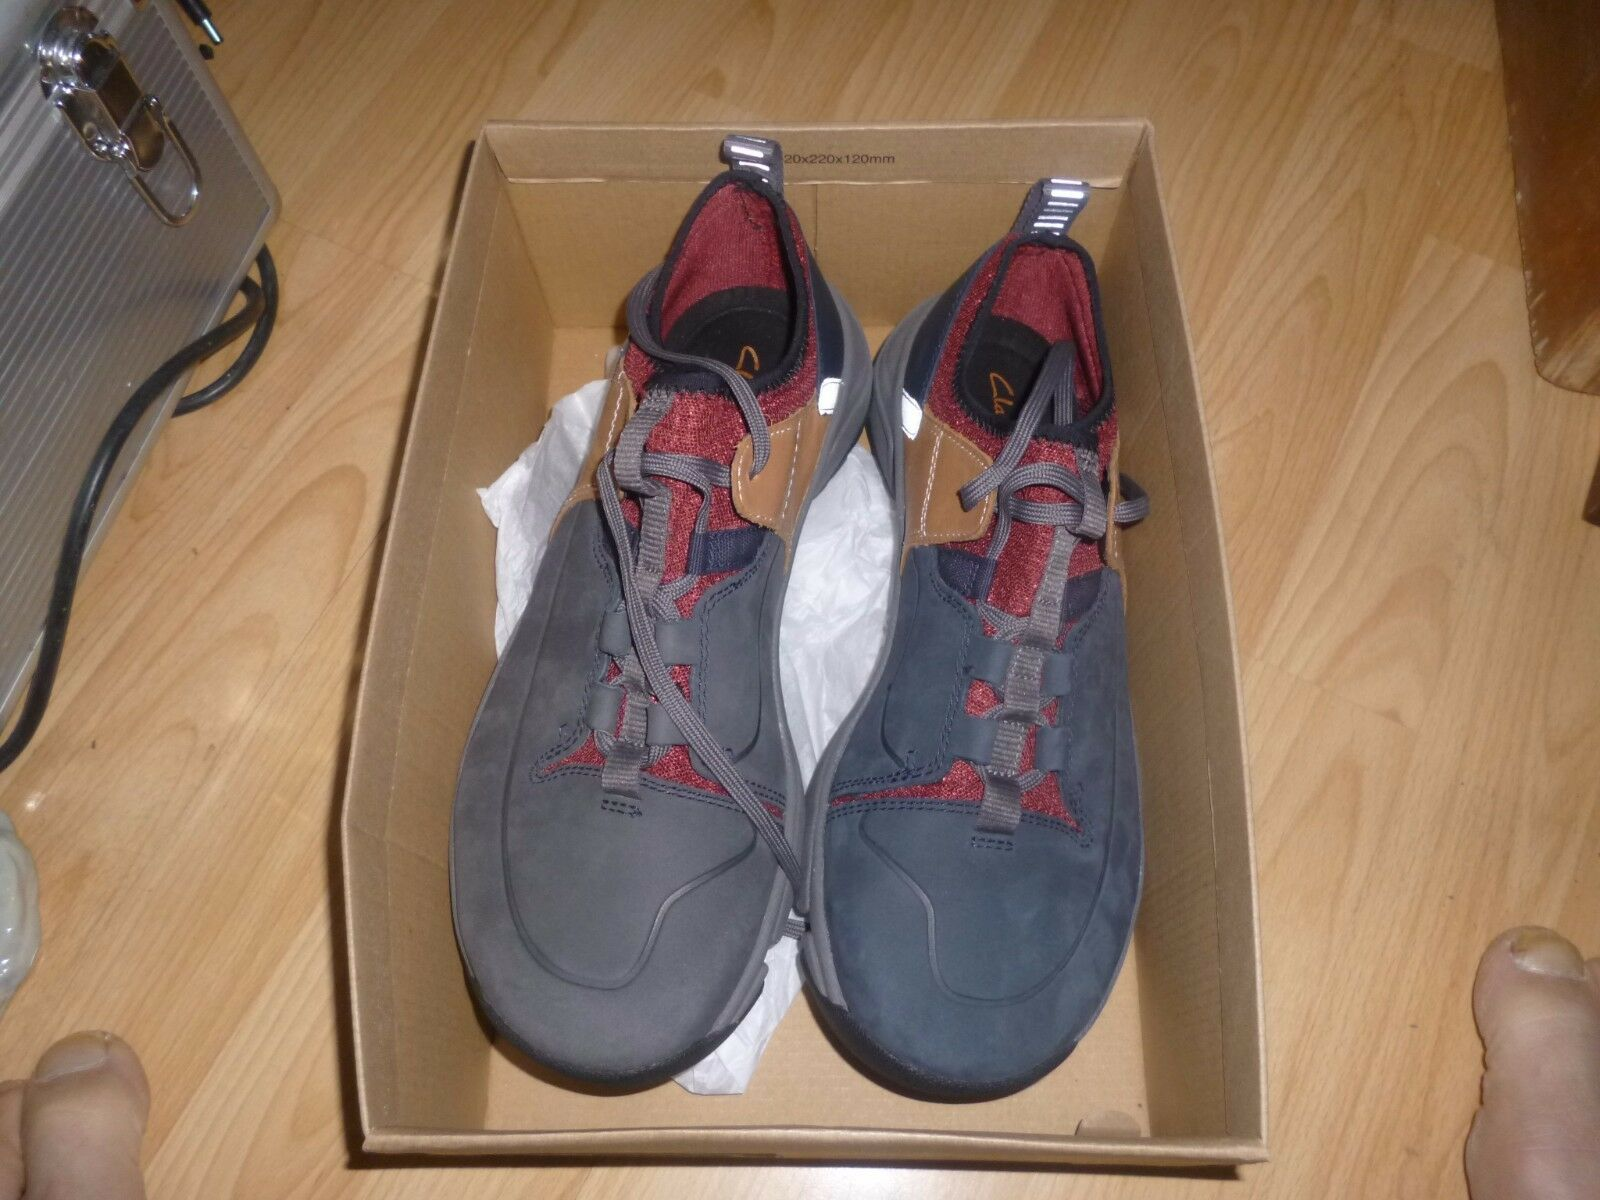 Mens Clarks Tritrack Nubuck Shoes Defects..Faded shoes Size 8G.New with Defects..Faded Shoes 0864c8